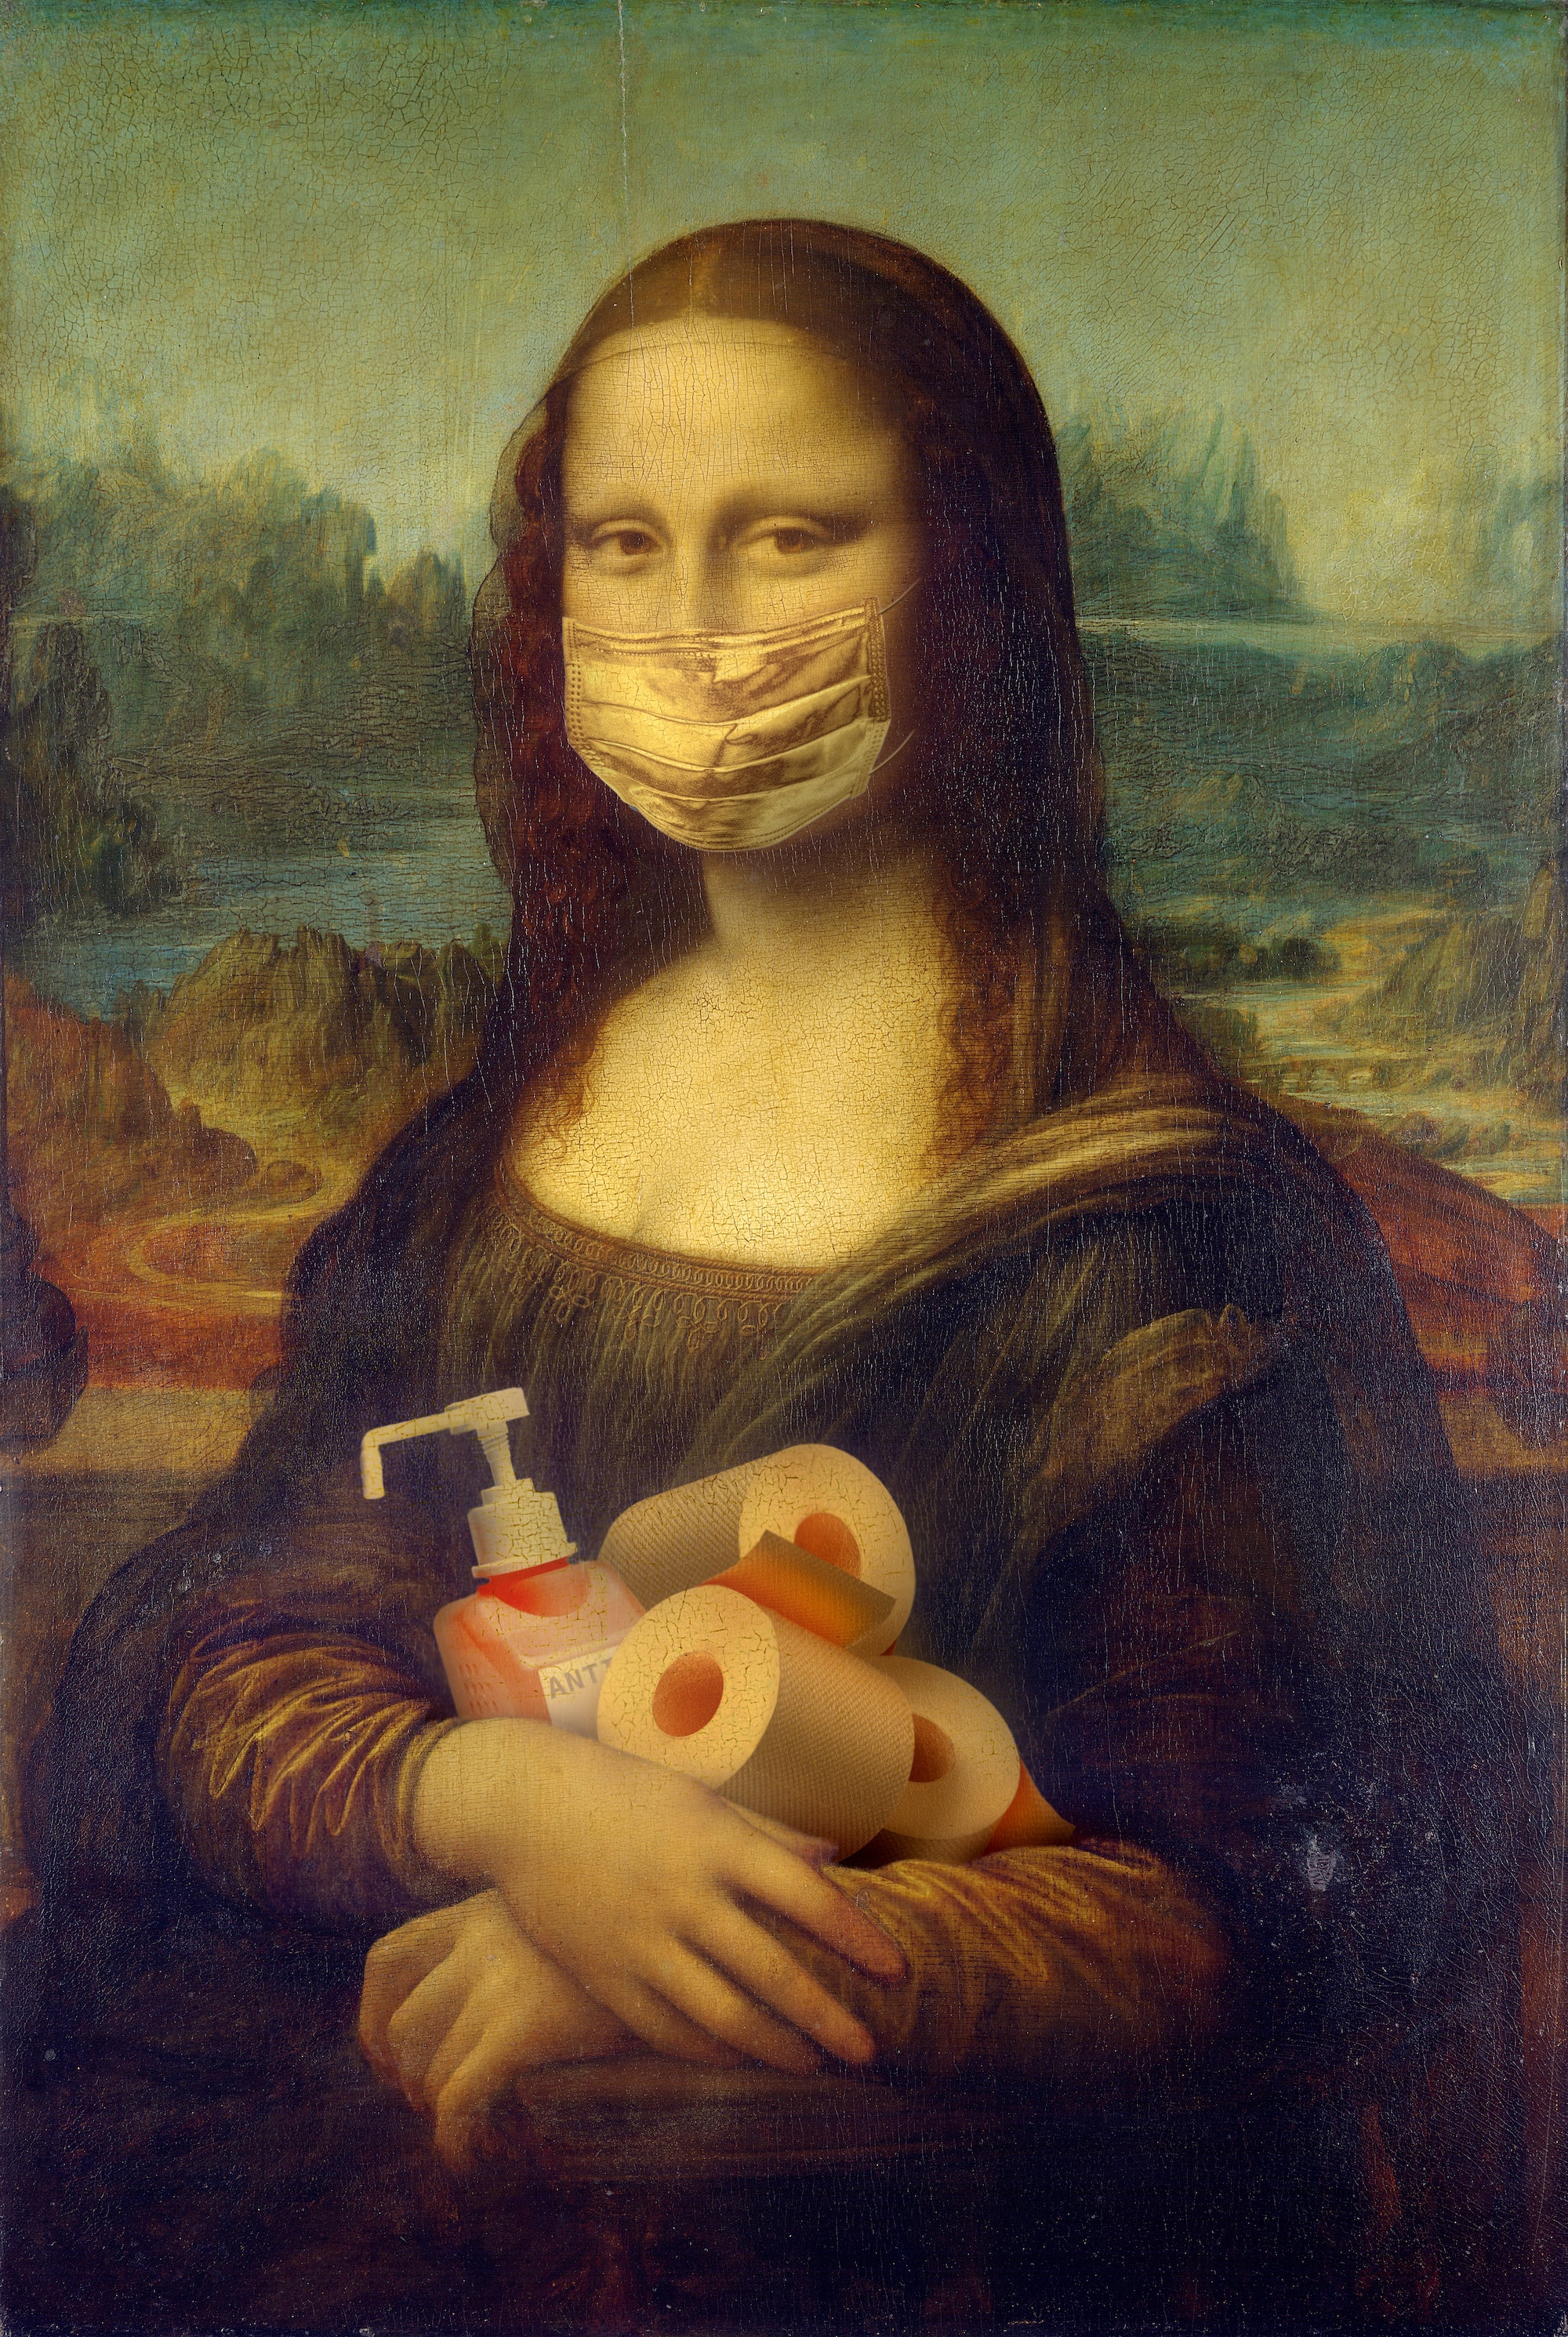 A photo edit of the Mona Lisa wearing a mask and holding cleaning products. Edit by Yaroslav Danylchenko on Pexels.